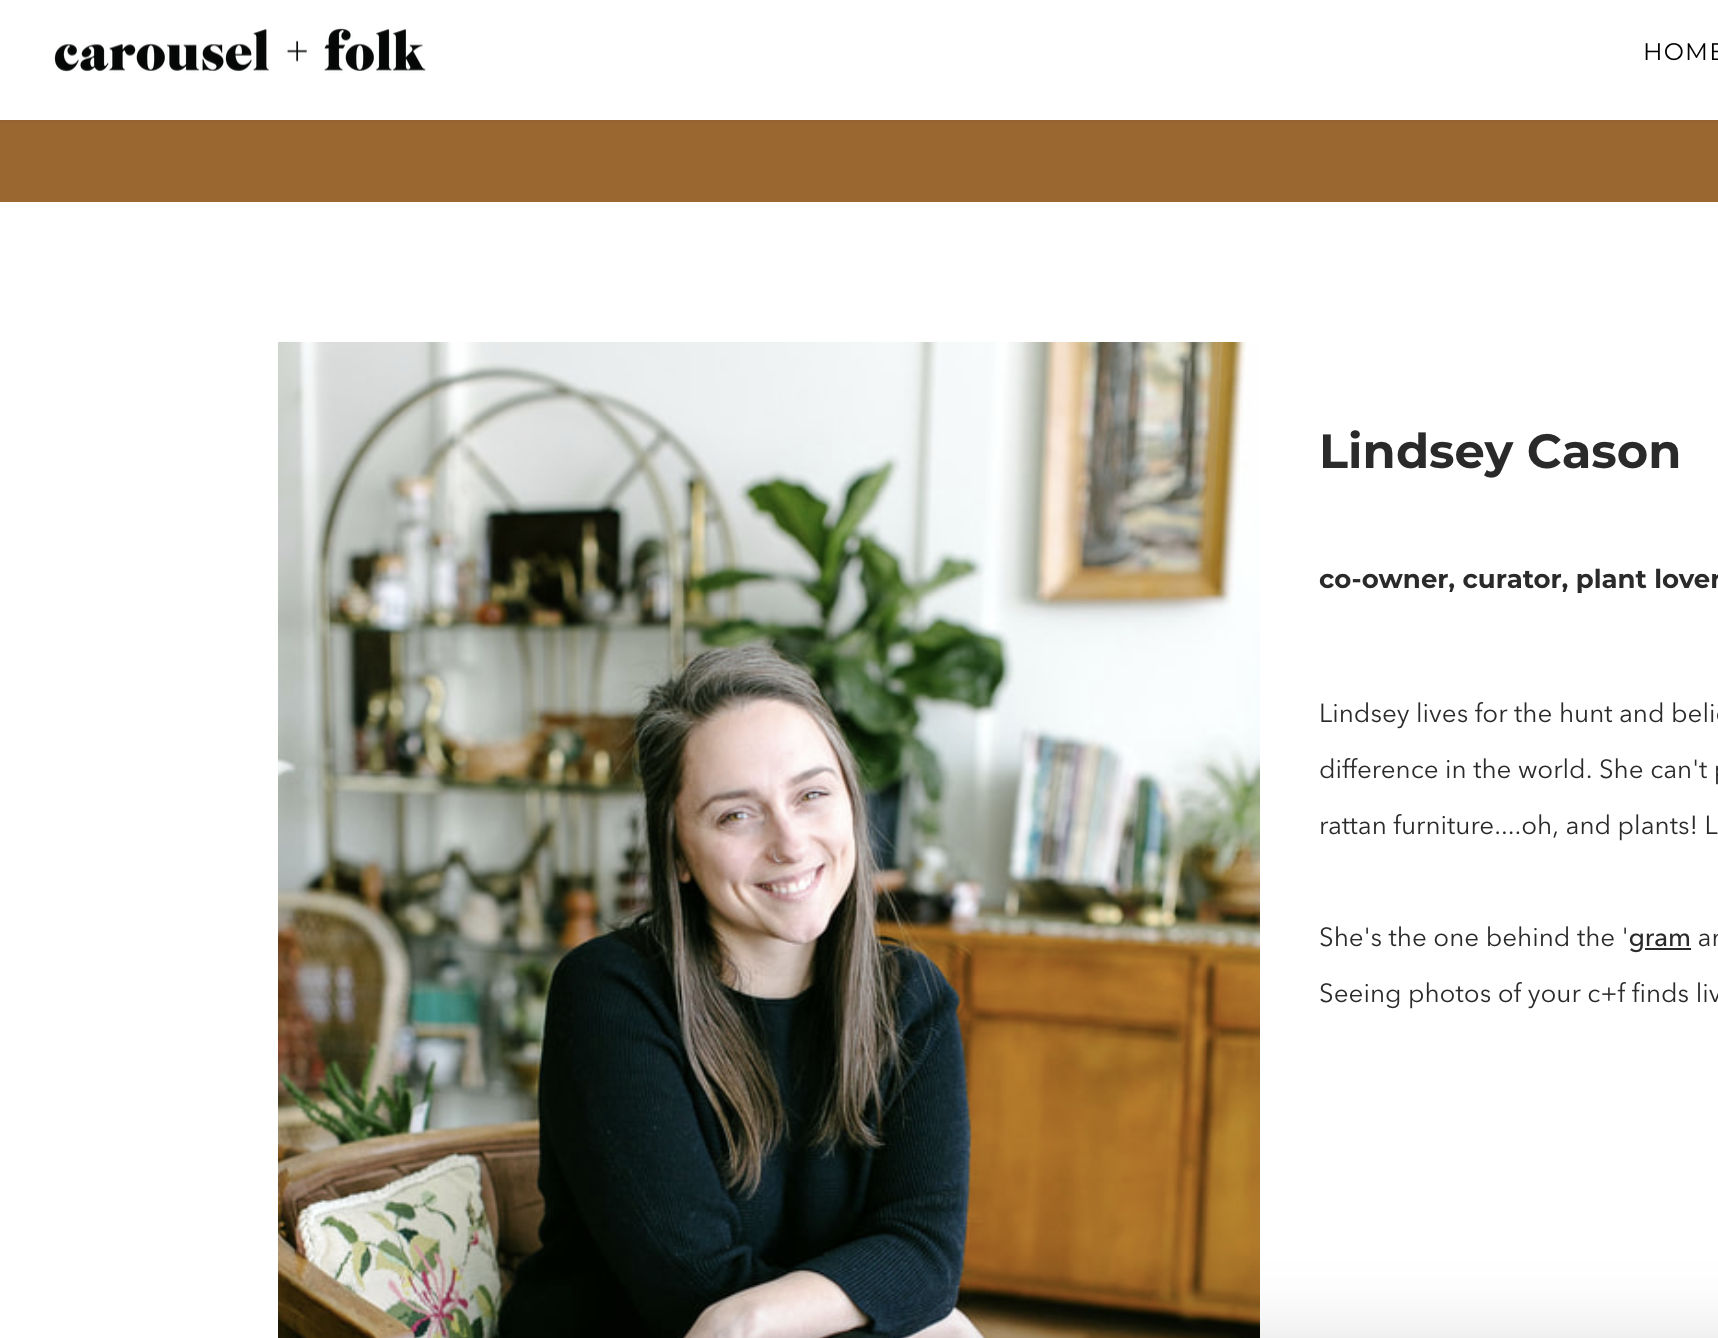 Updated about page (Bonus: it matched the aesthetic on her homepage! #winning)